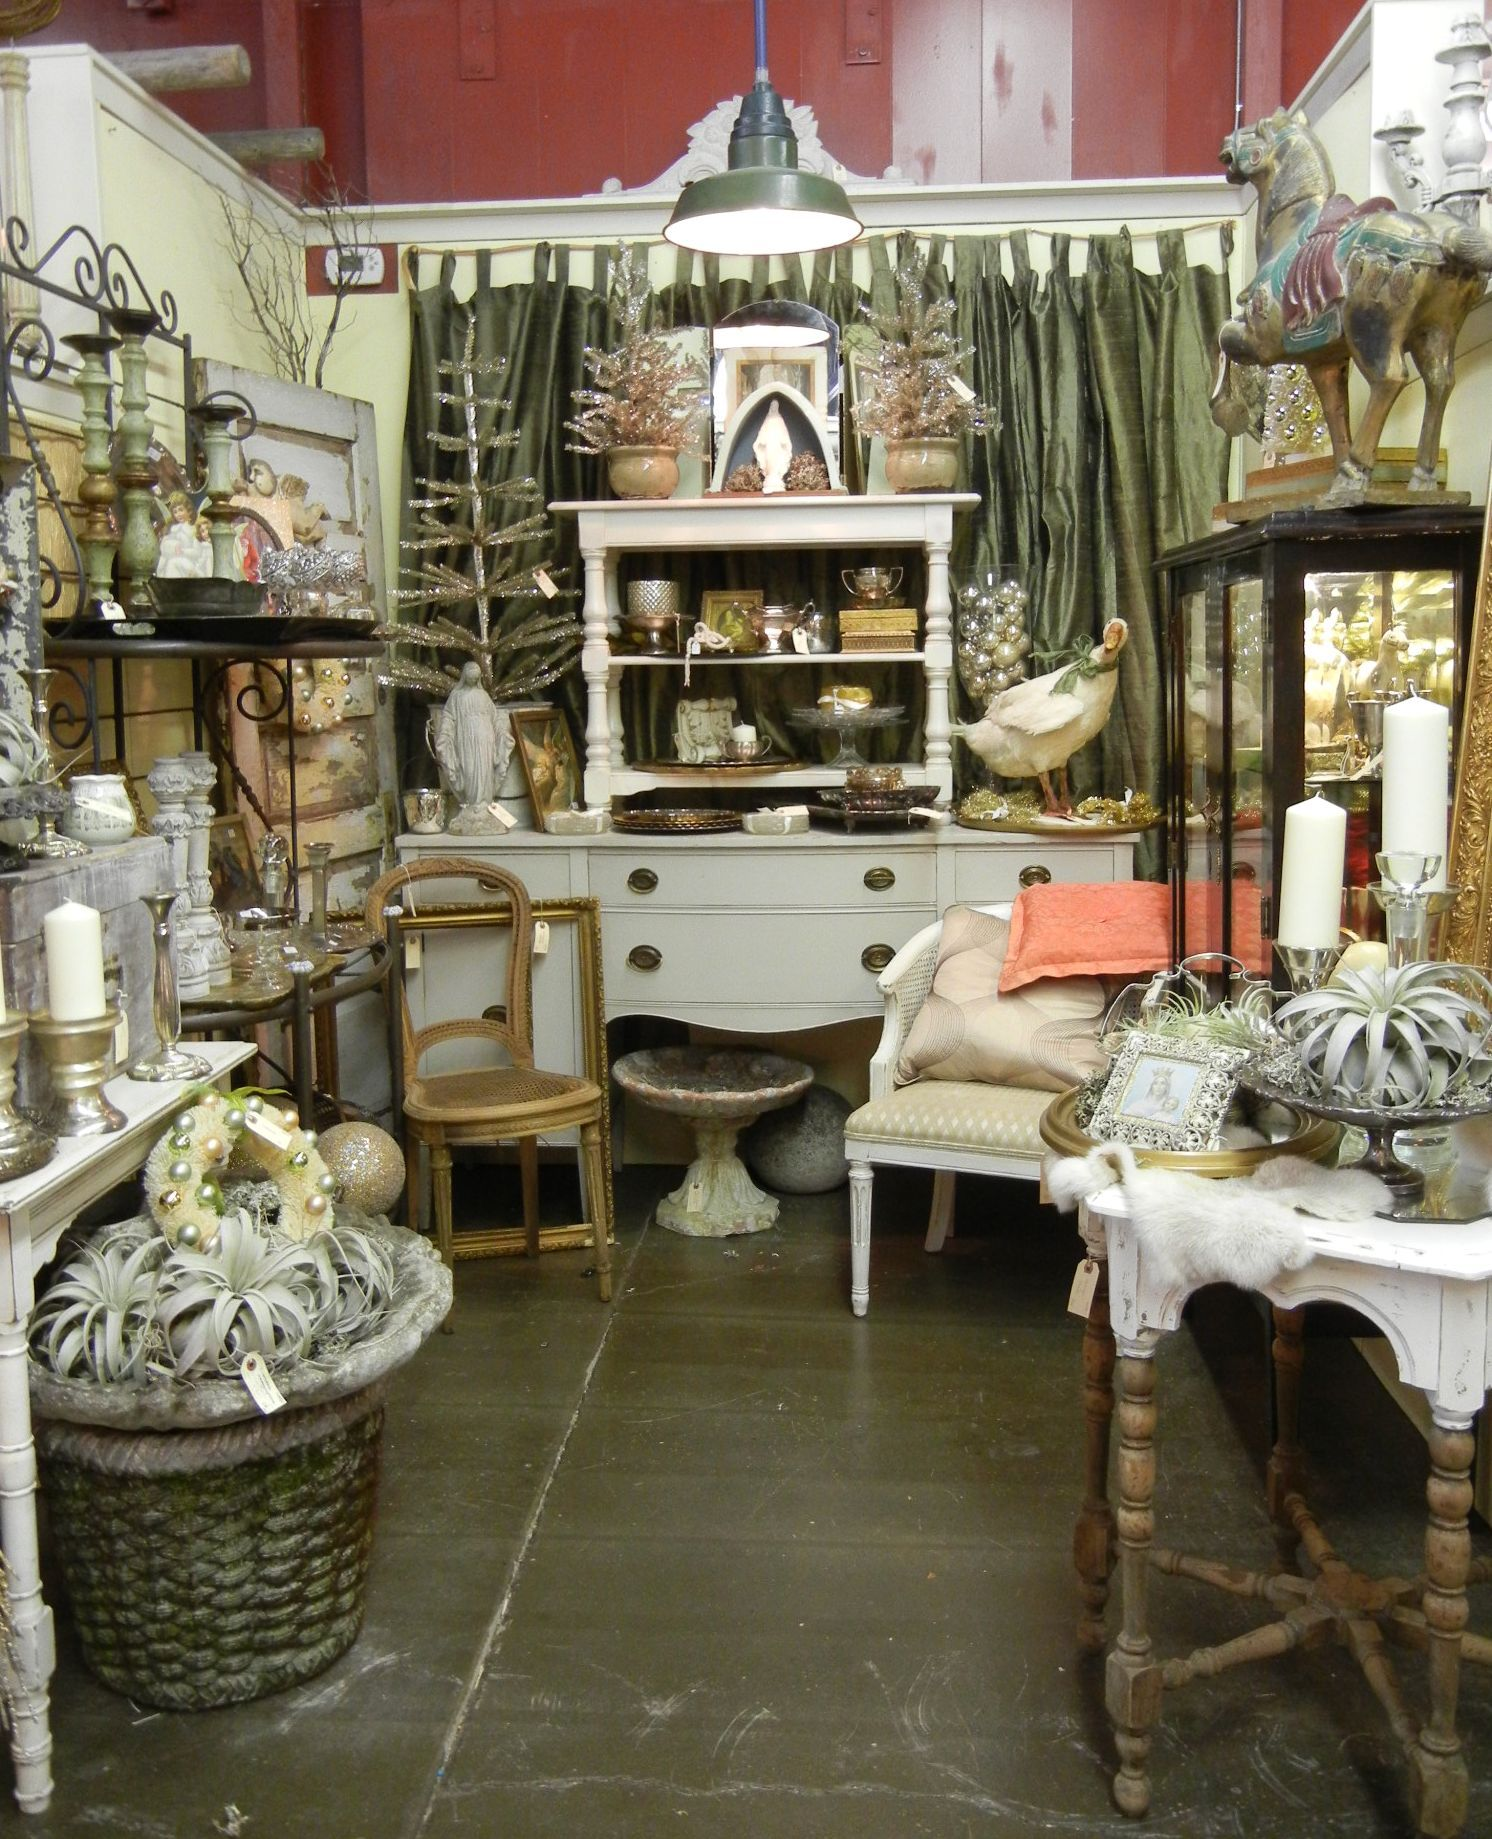 Decorating With Antiques: Antique Booth Decorating Ideas